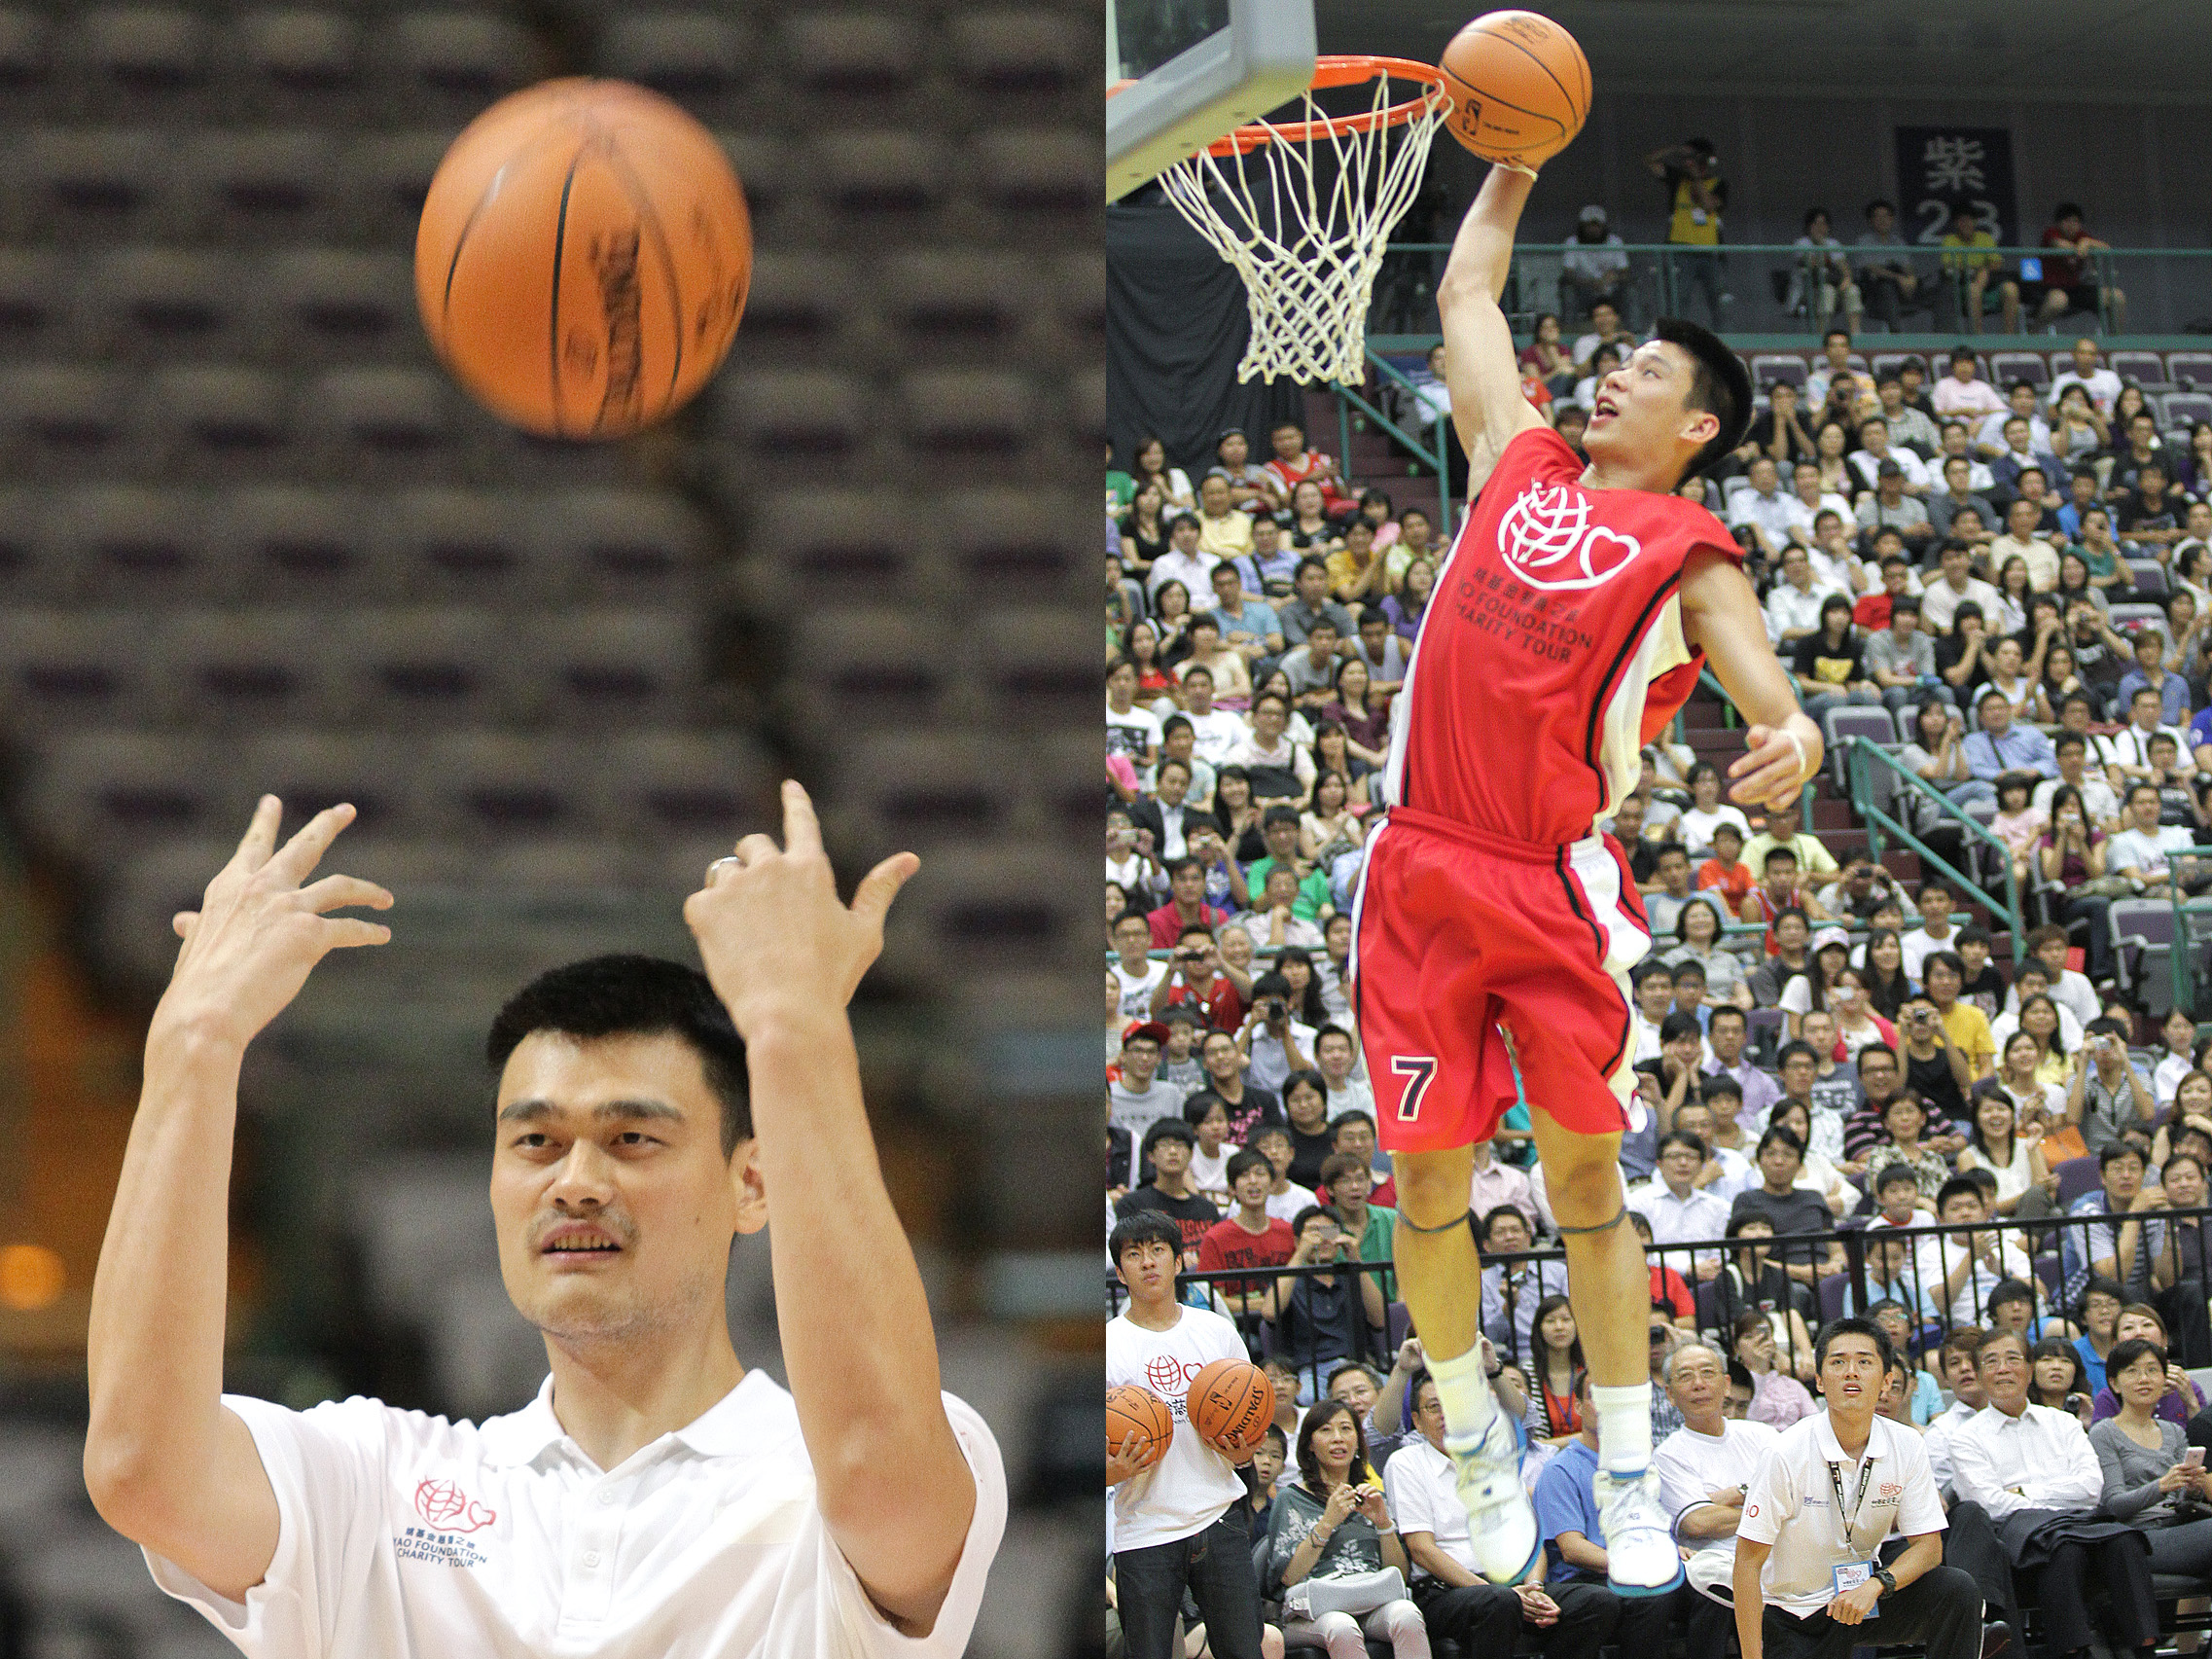 Left: NBA Houston Rockets player Yao Ming has fun before a charity game in Taipei yesterday. Right: NBA Golden State Warriors player Jeremy Lin demon...